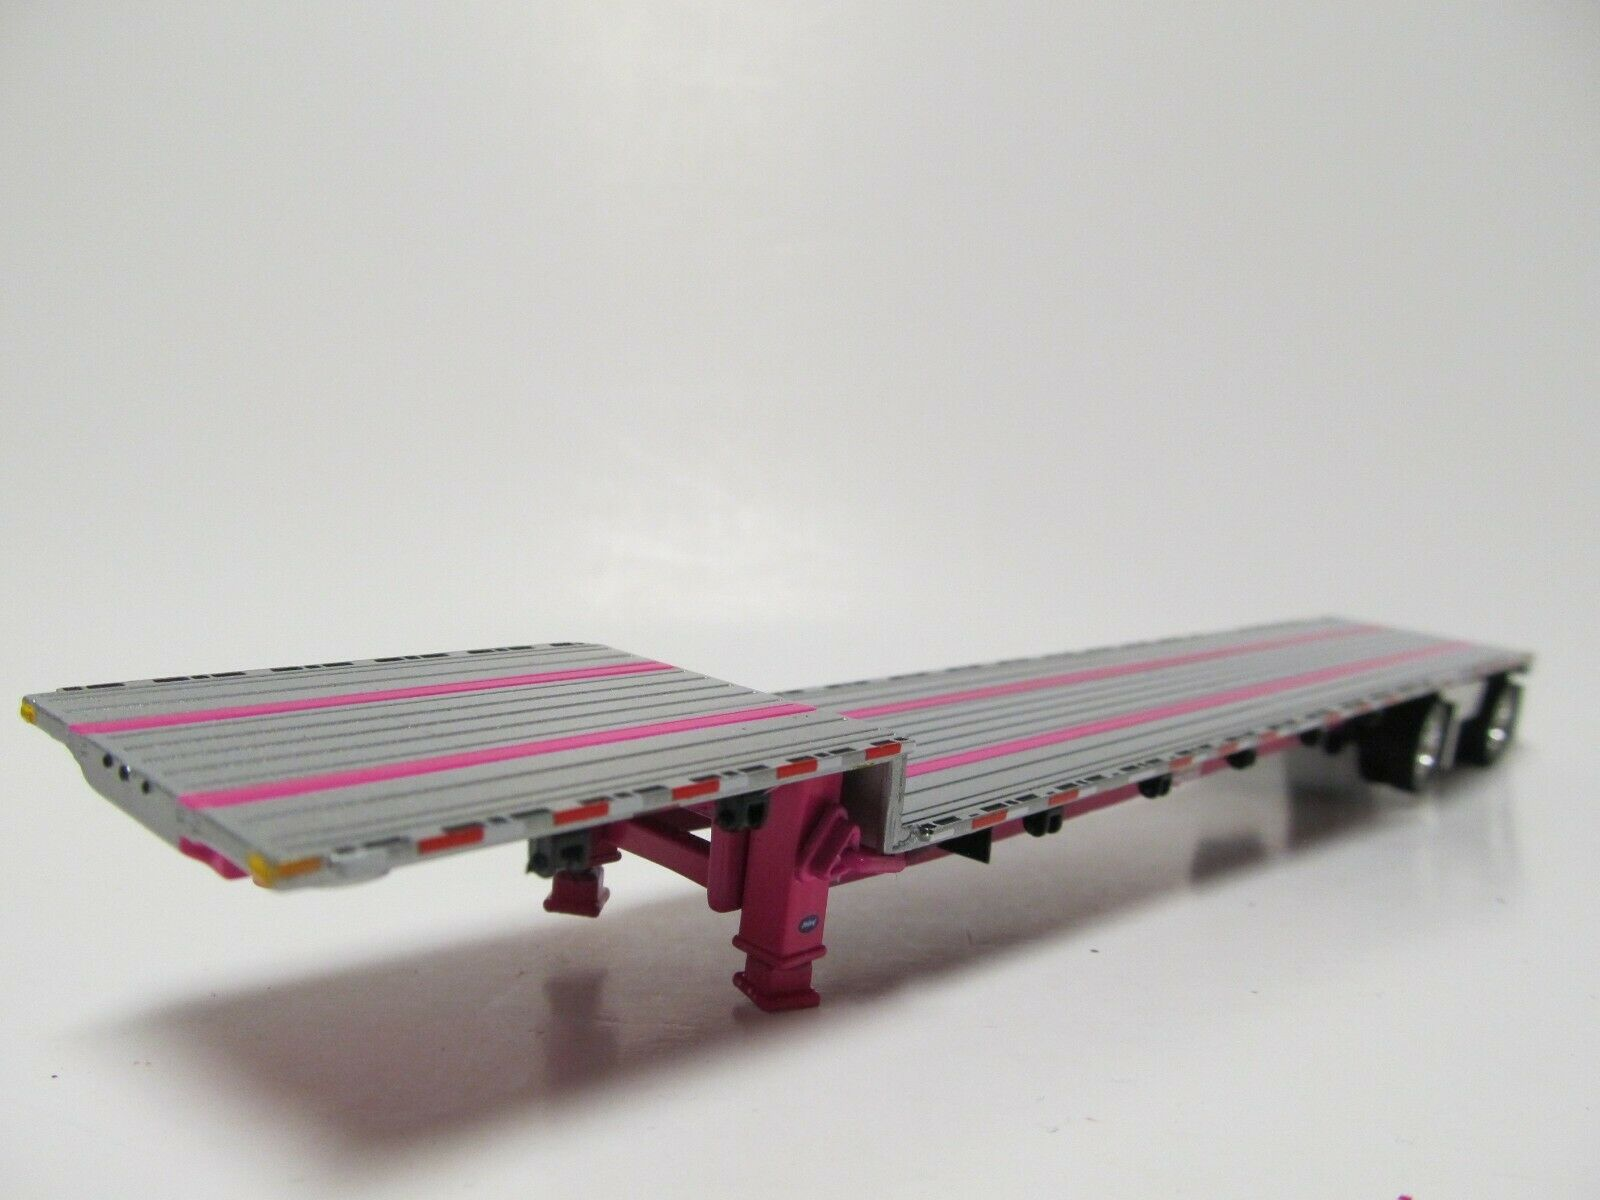 DCP 1/64 SCALE TRANSCRAFT STEP DECK TRAILER SILVER DECK WITH PINK FRAME